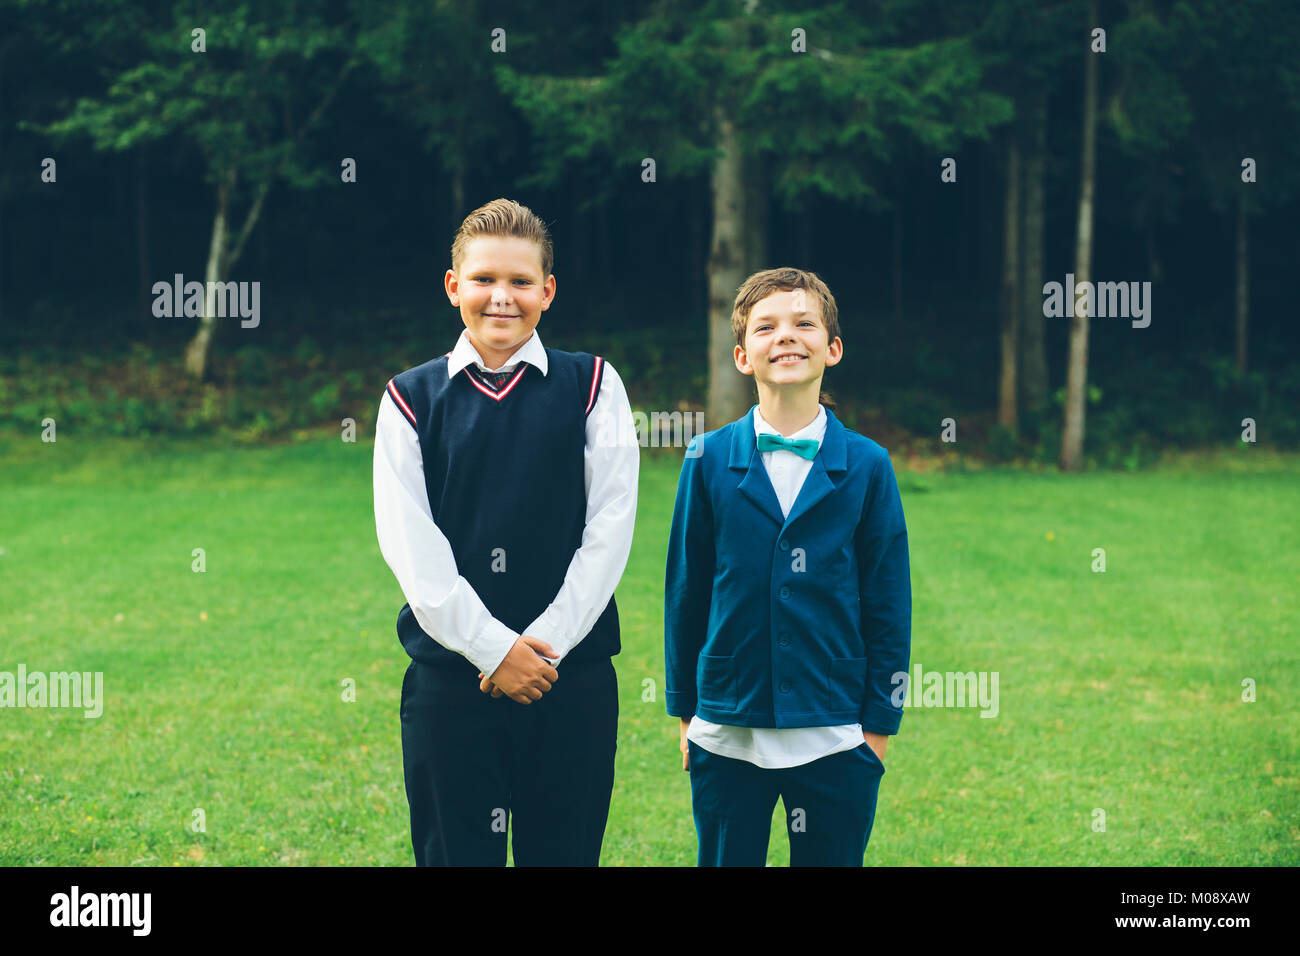 Two boys pose for a formal portrait in their backyard. - Stock Image